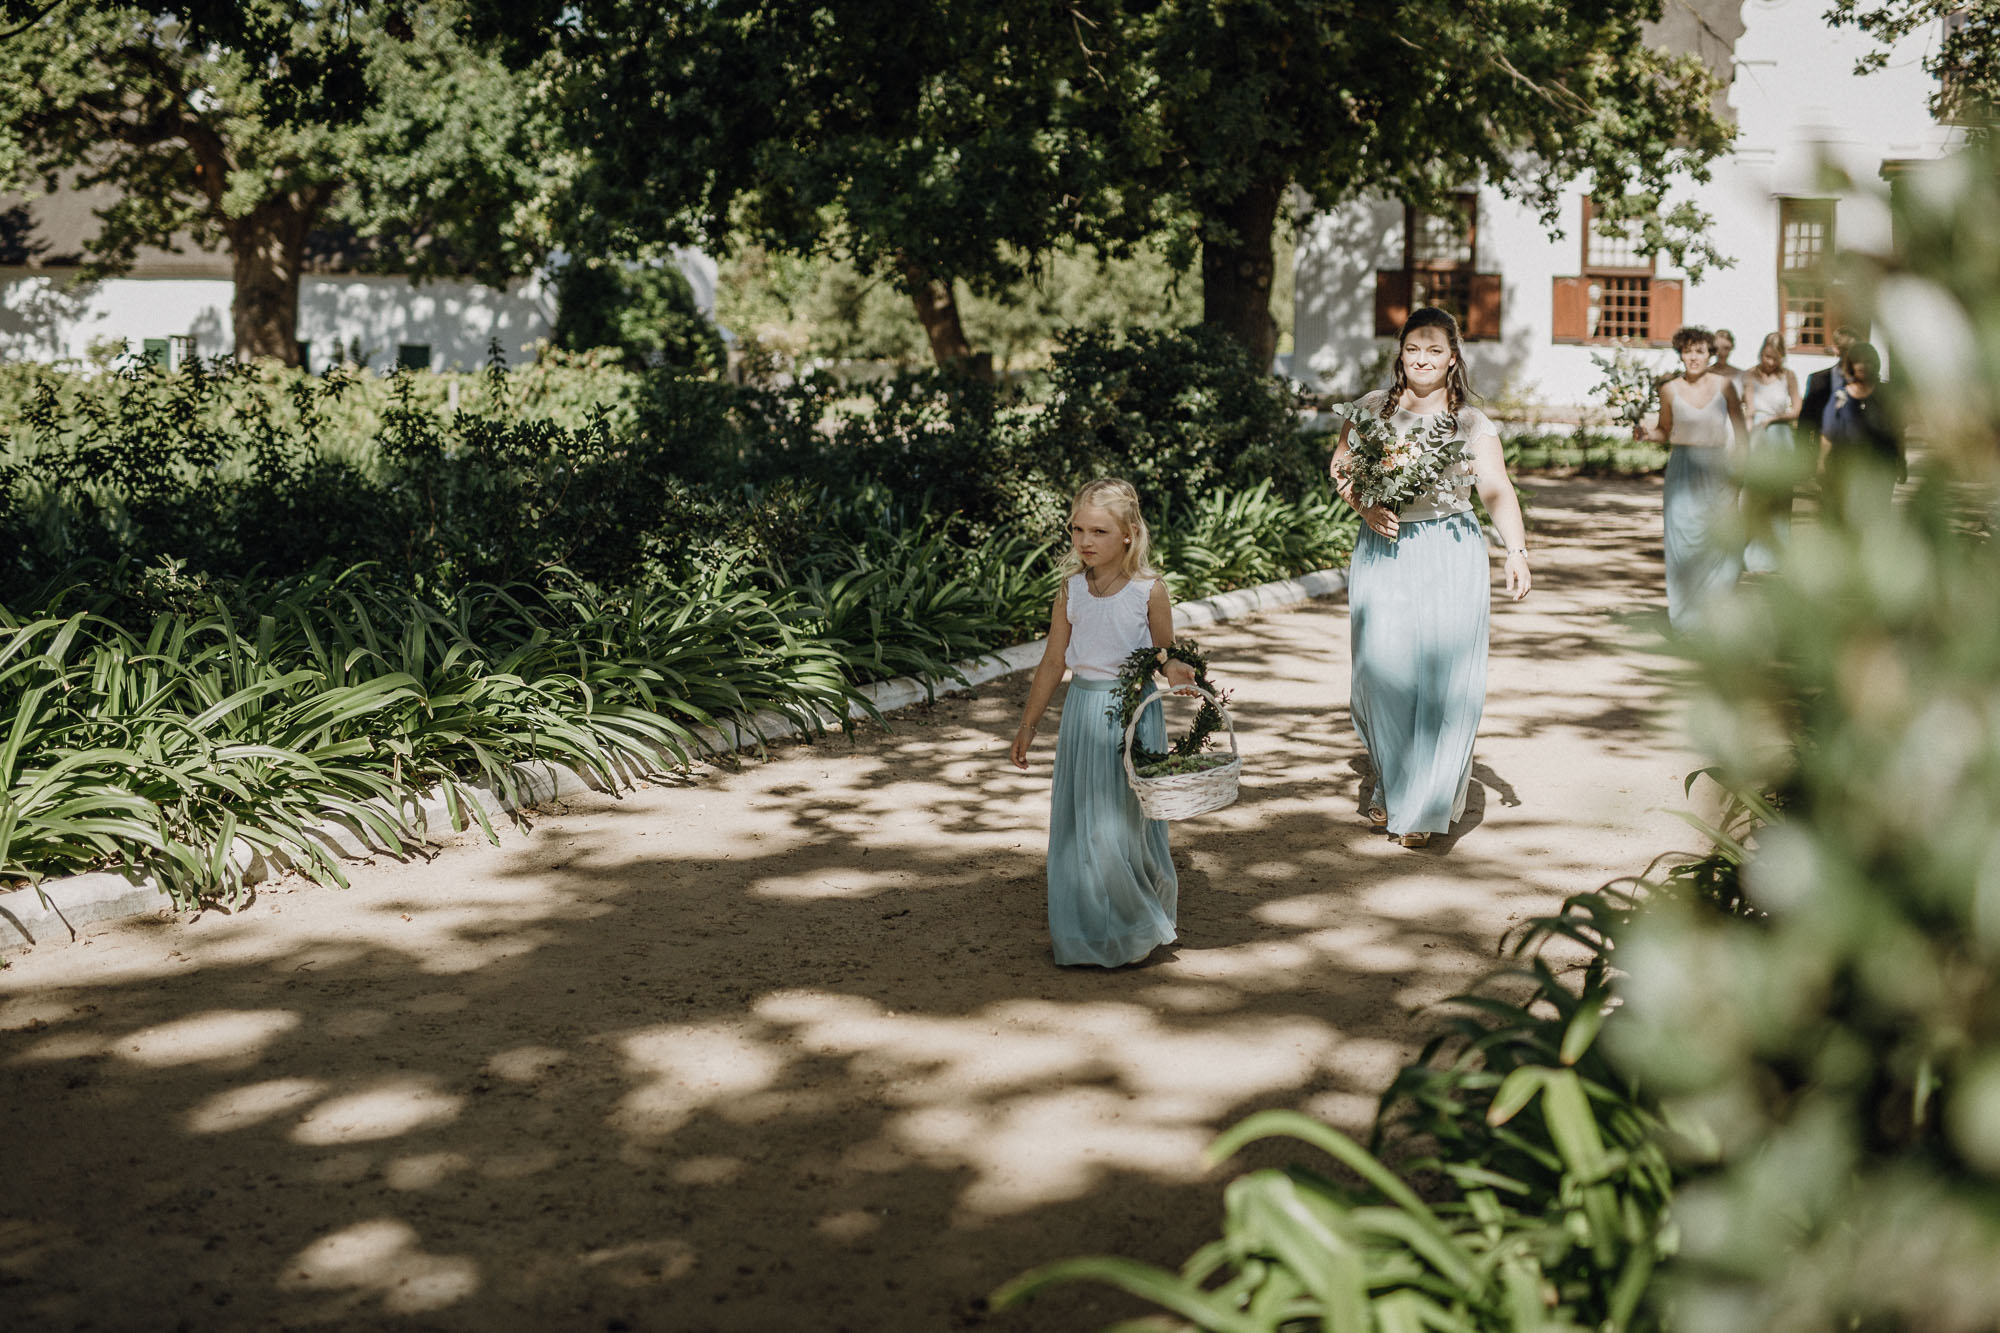 raissa simon photography destination wedding capetown vrede en lust wine estate 050 - Nienke + Tim